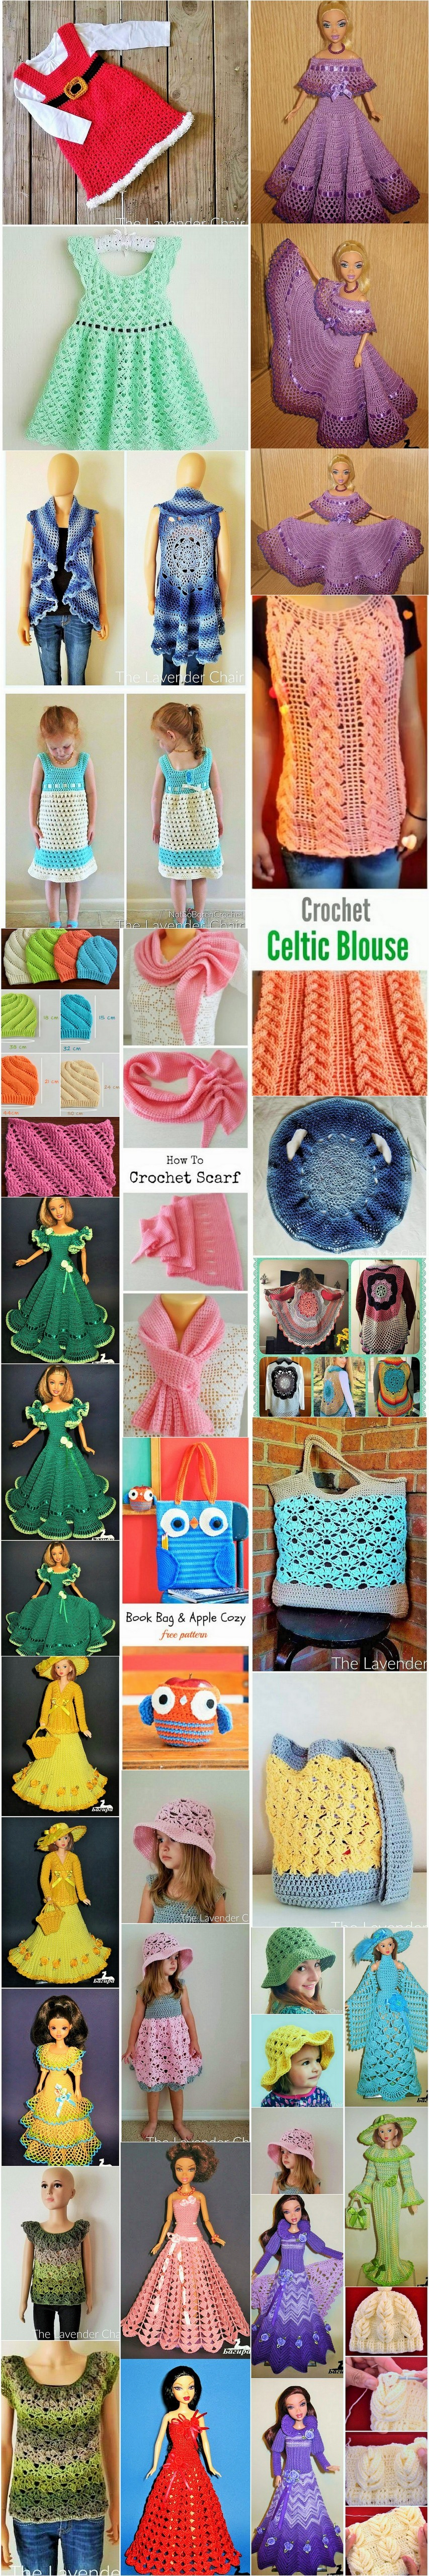 Home made Diy crochet Ideas (2)